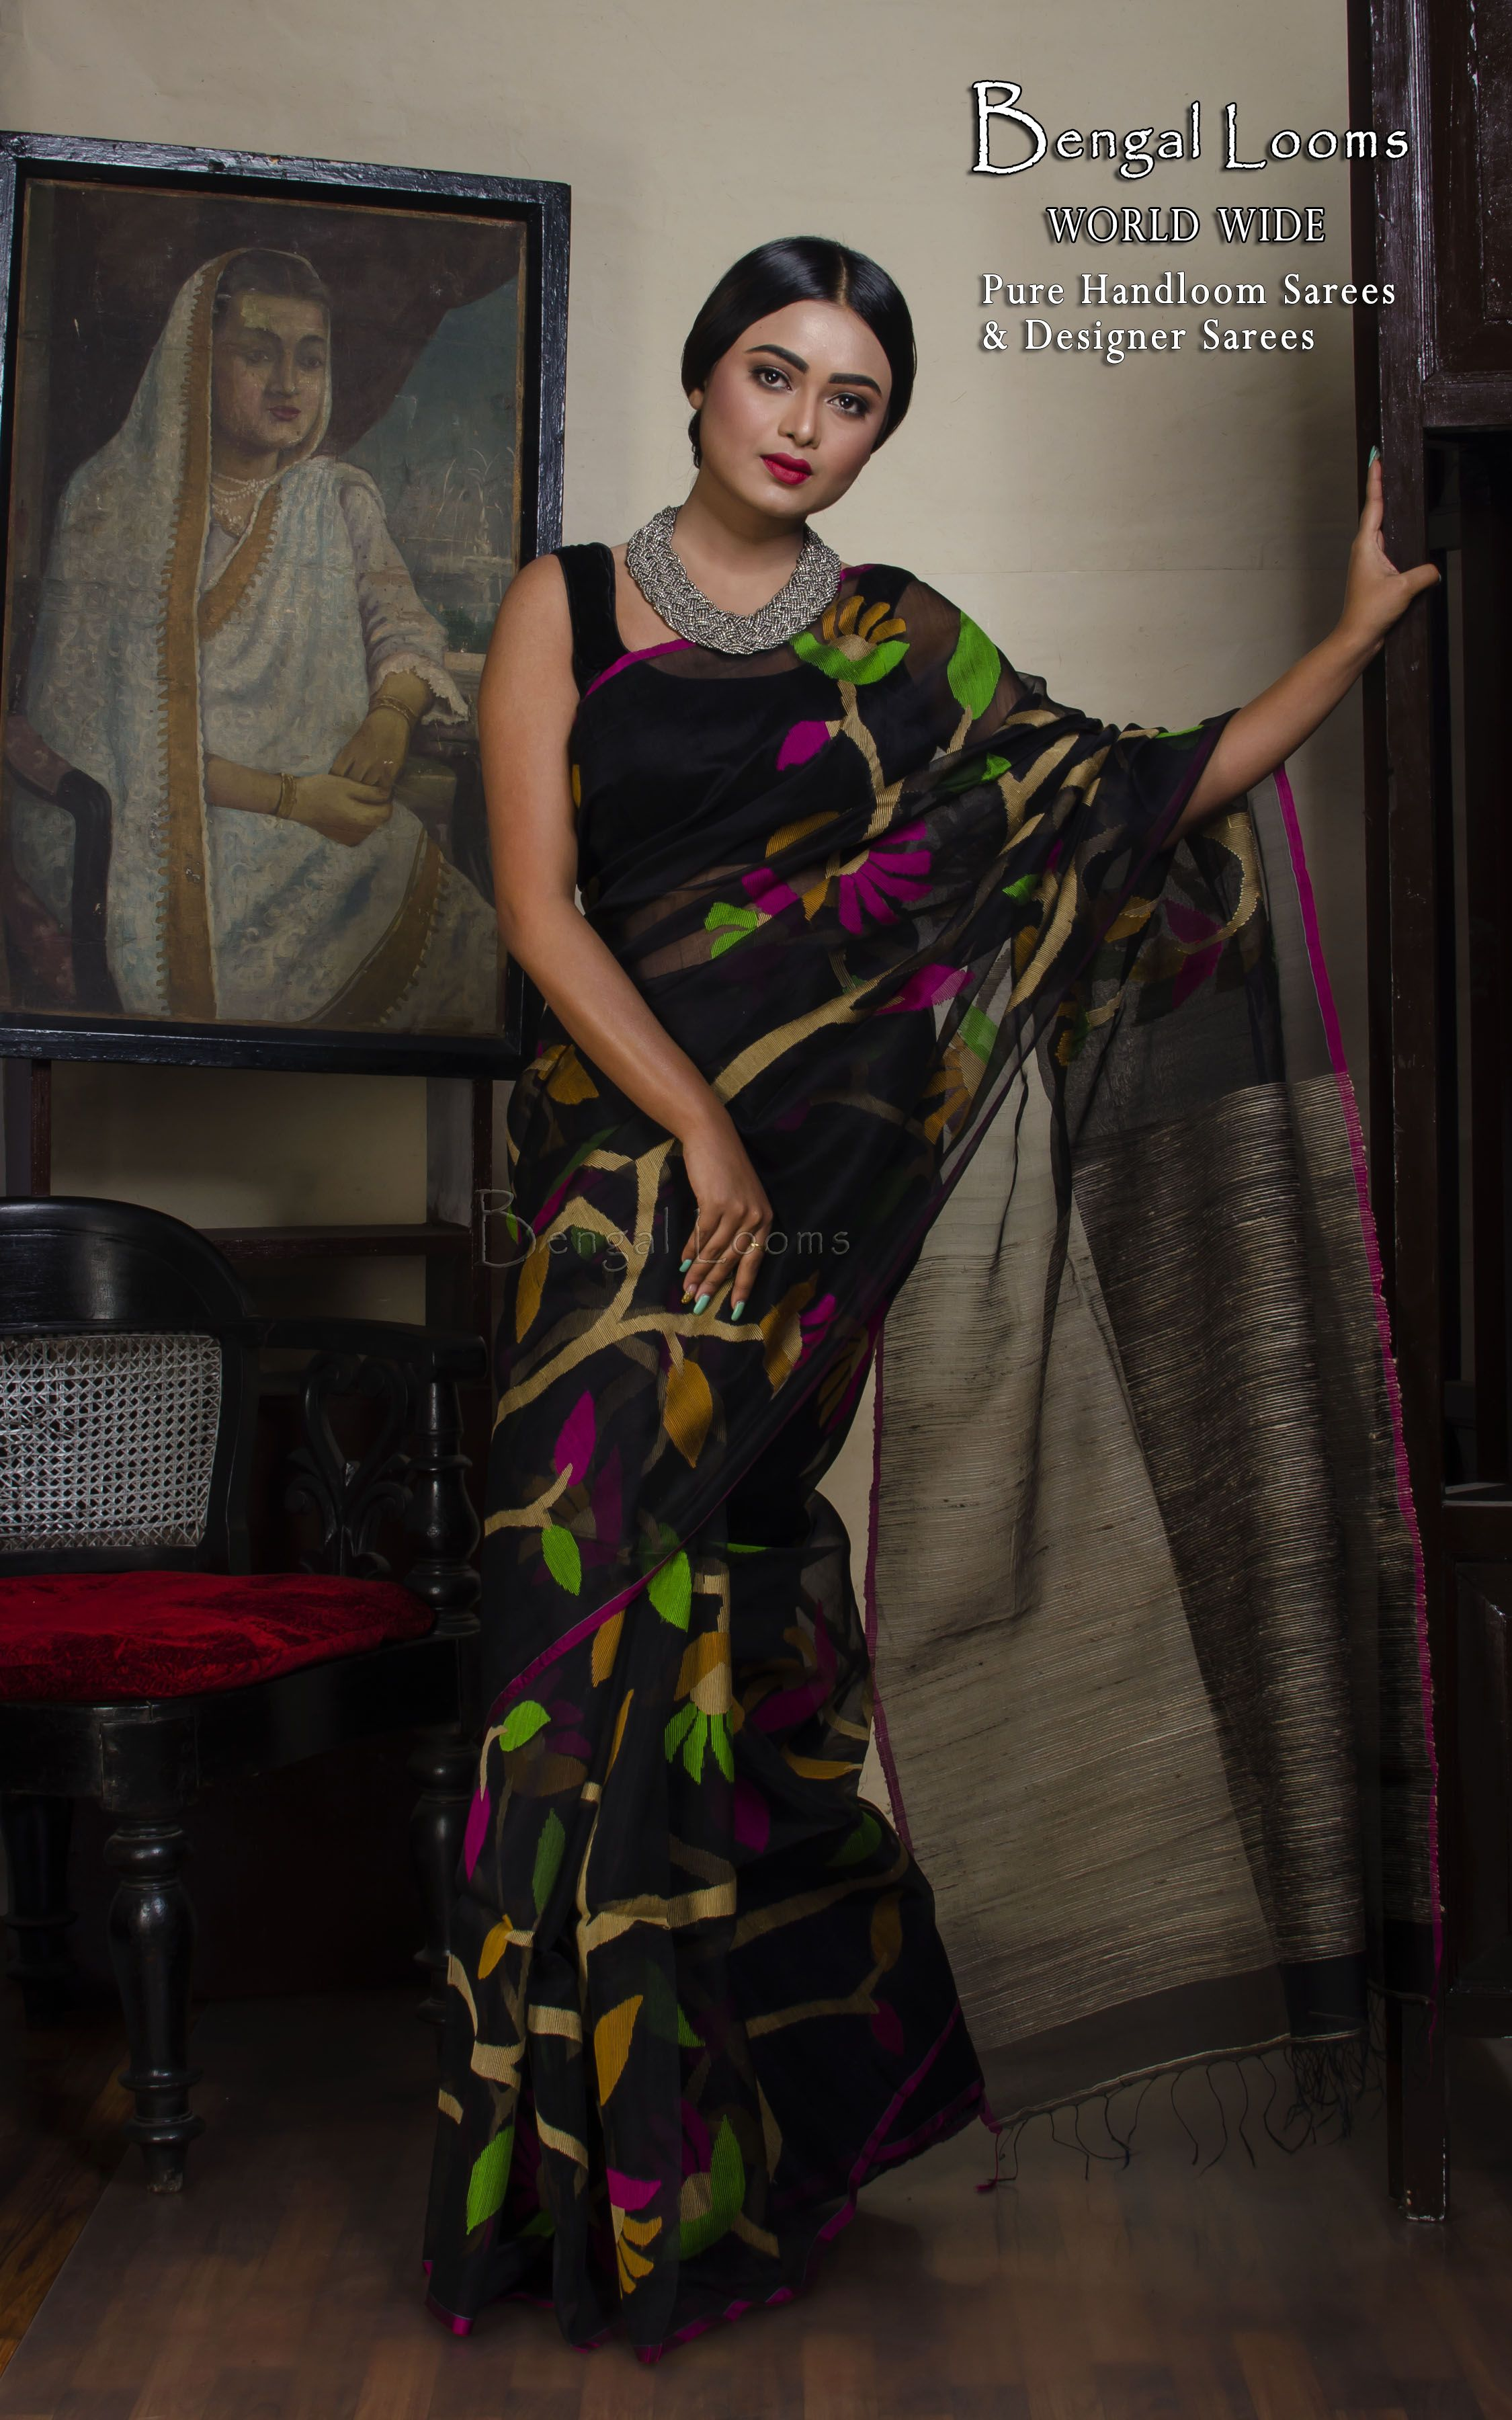 2defa7ce0de4e Pure handloom Muslin Silk Jamdani saree with all over body work Color  Black    Green   Rani   Beige Blouse Piece  Yes Fall Pico   Yes Care   Dry- Clean  Only